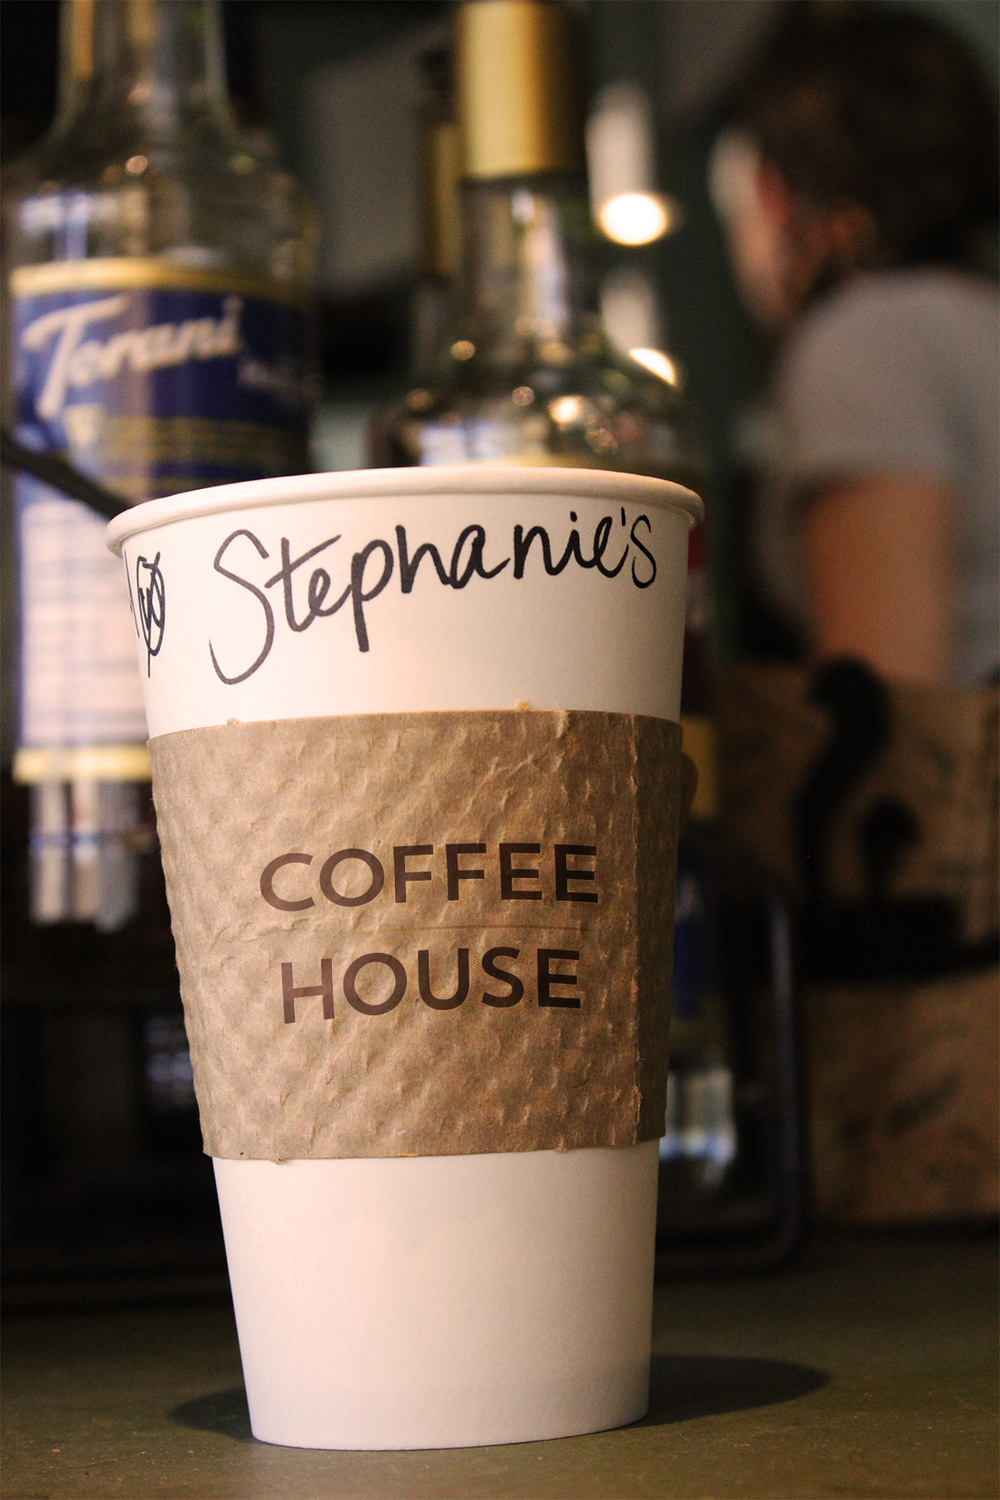 Coffee_house_stephanies_cup copy.jpg